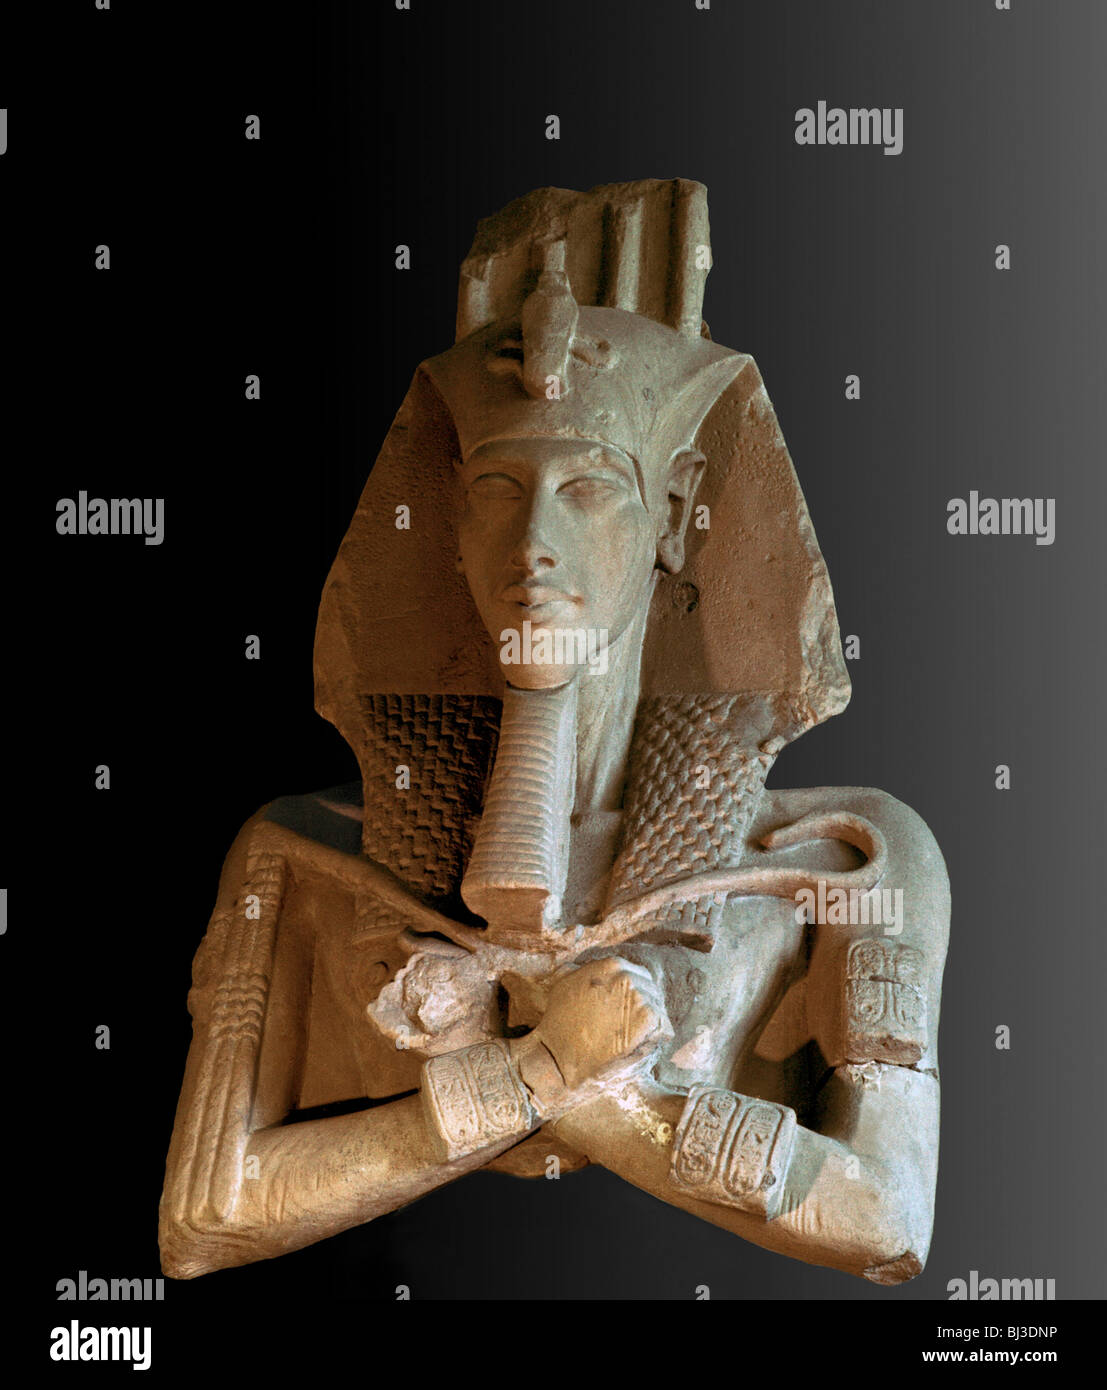 Sandstone bust from a colossal statue of Akhenaten, Ancient Egyptian, Amarna period, c1350-1334 BC. Artist: Werner - Stock Image